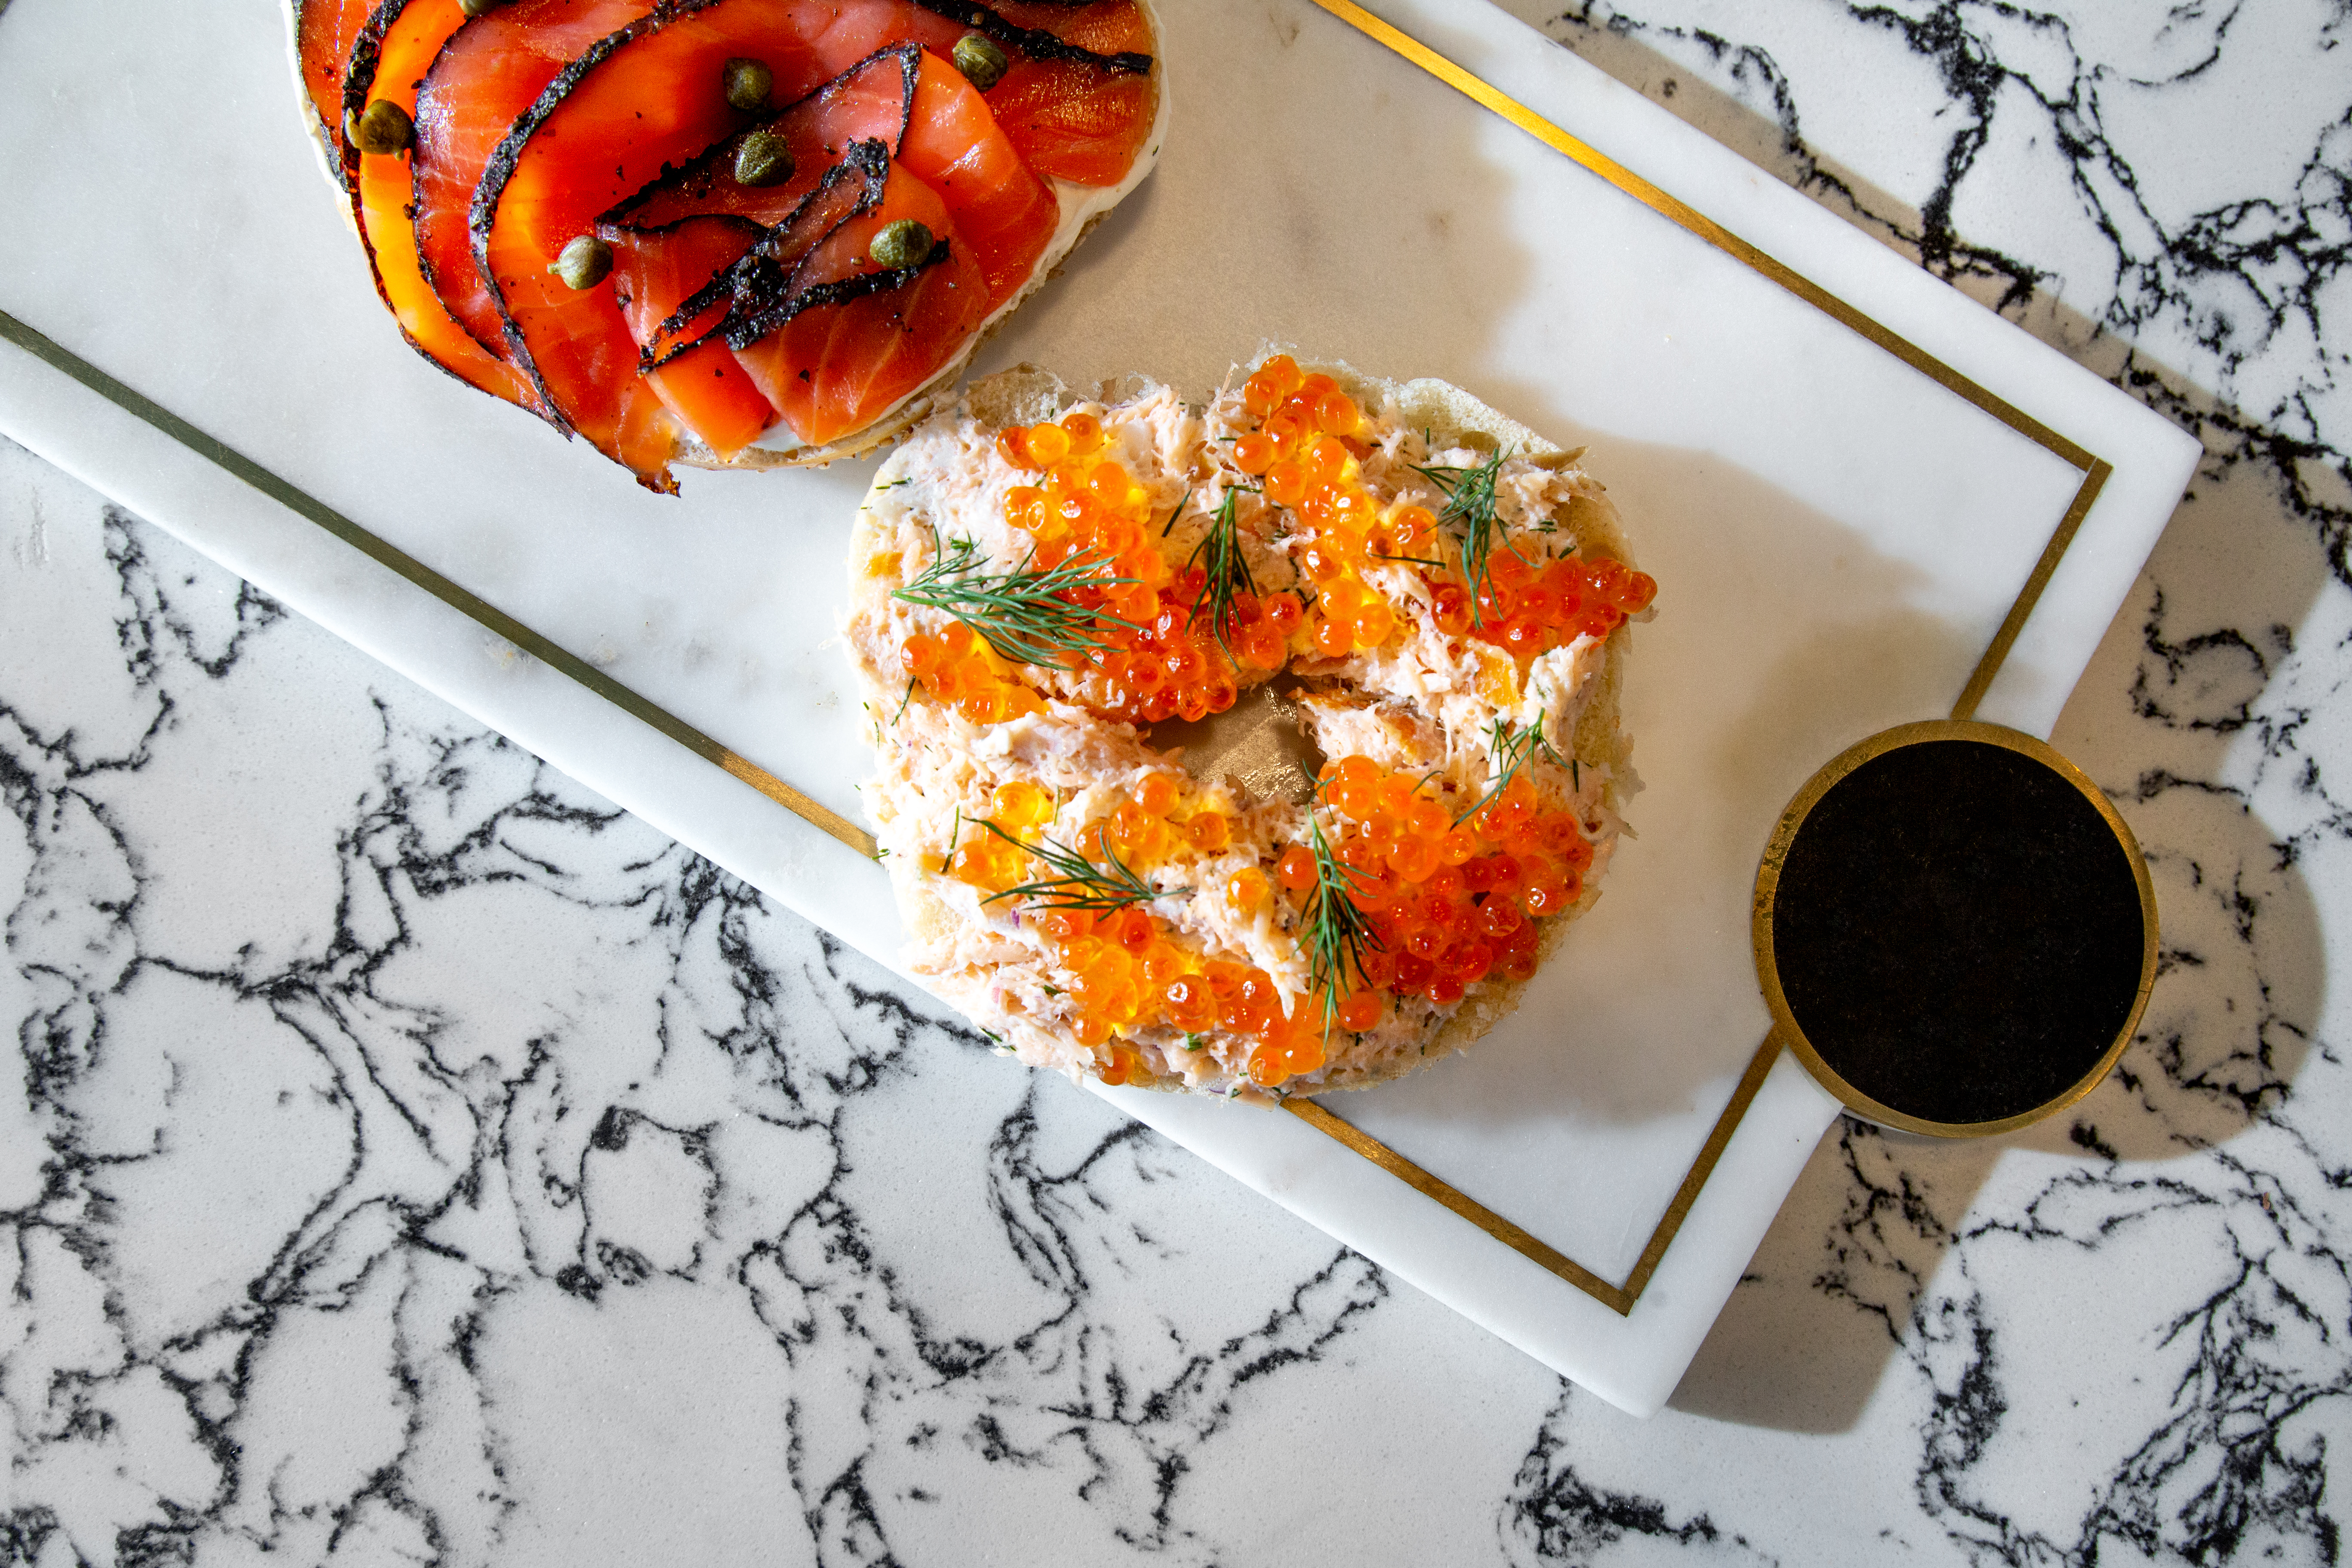 Two bagels, one with lox and one with smoked salmon and roe